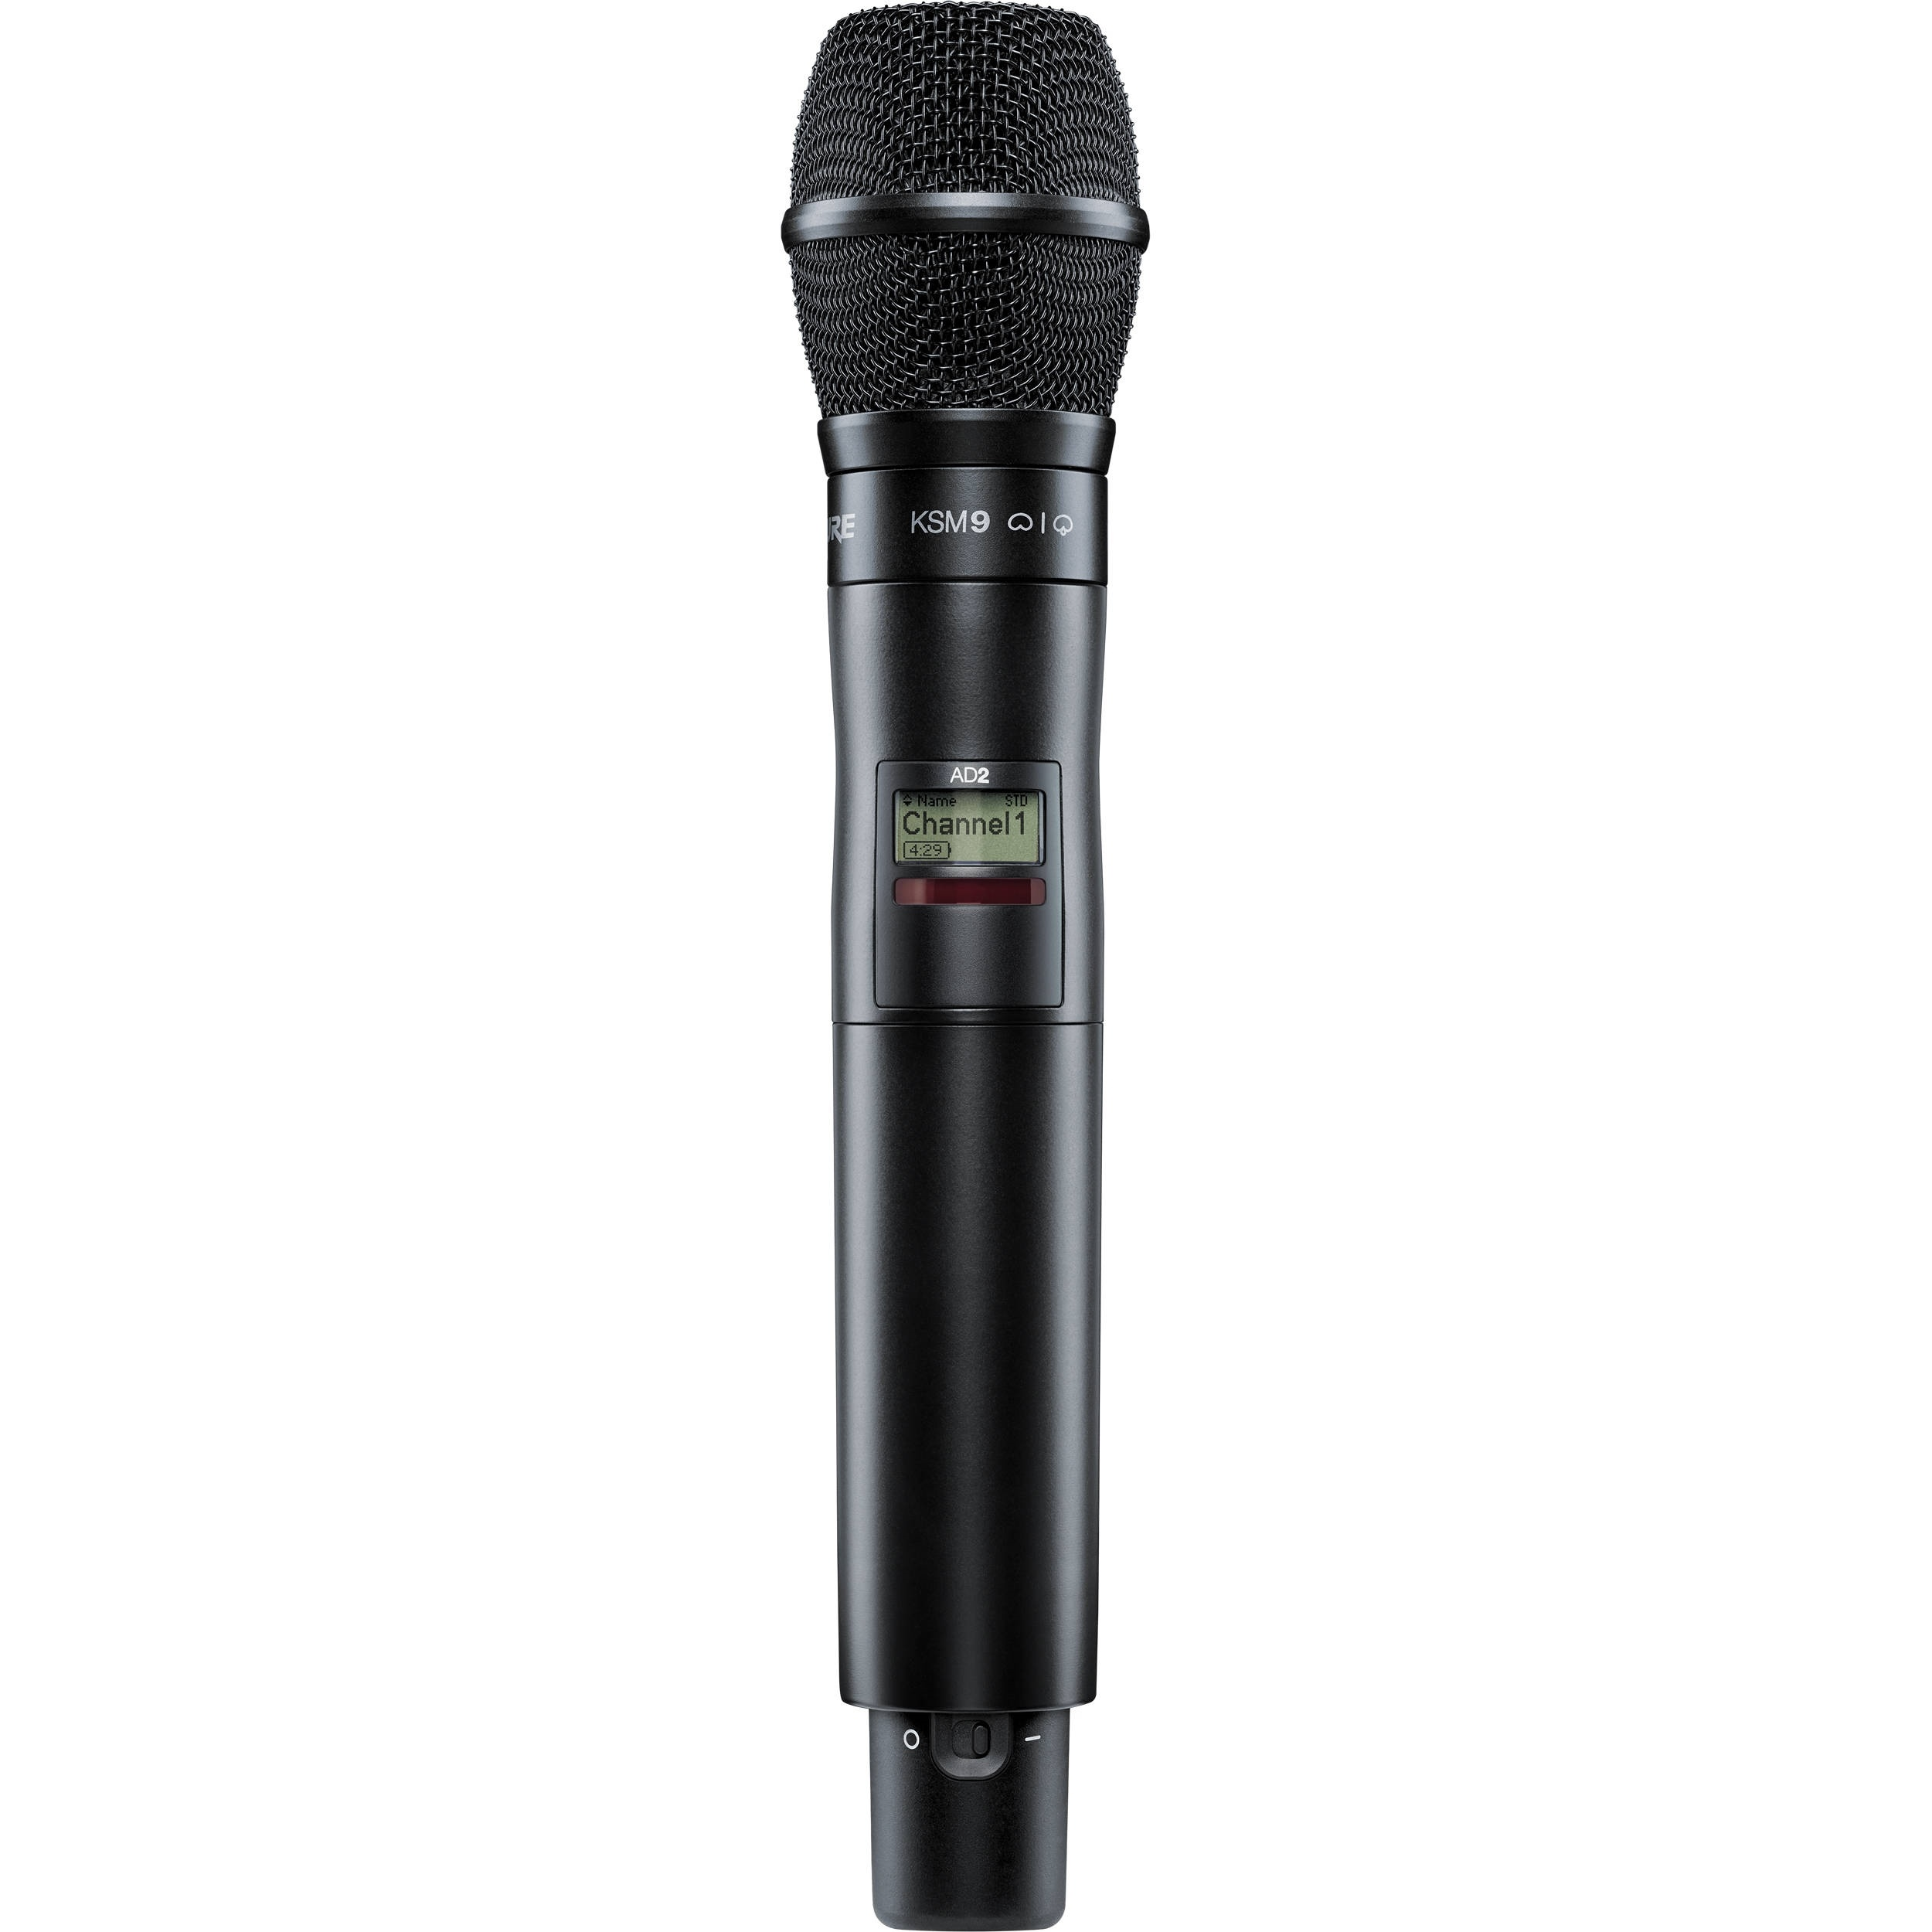 Shure AD2/KSM9B Digital Handheld Wireless Microphone Transmitter with KSM9 Capsule